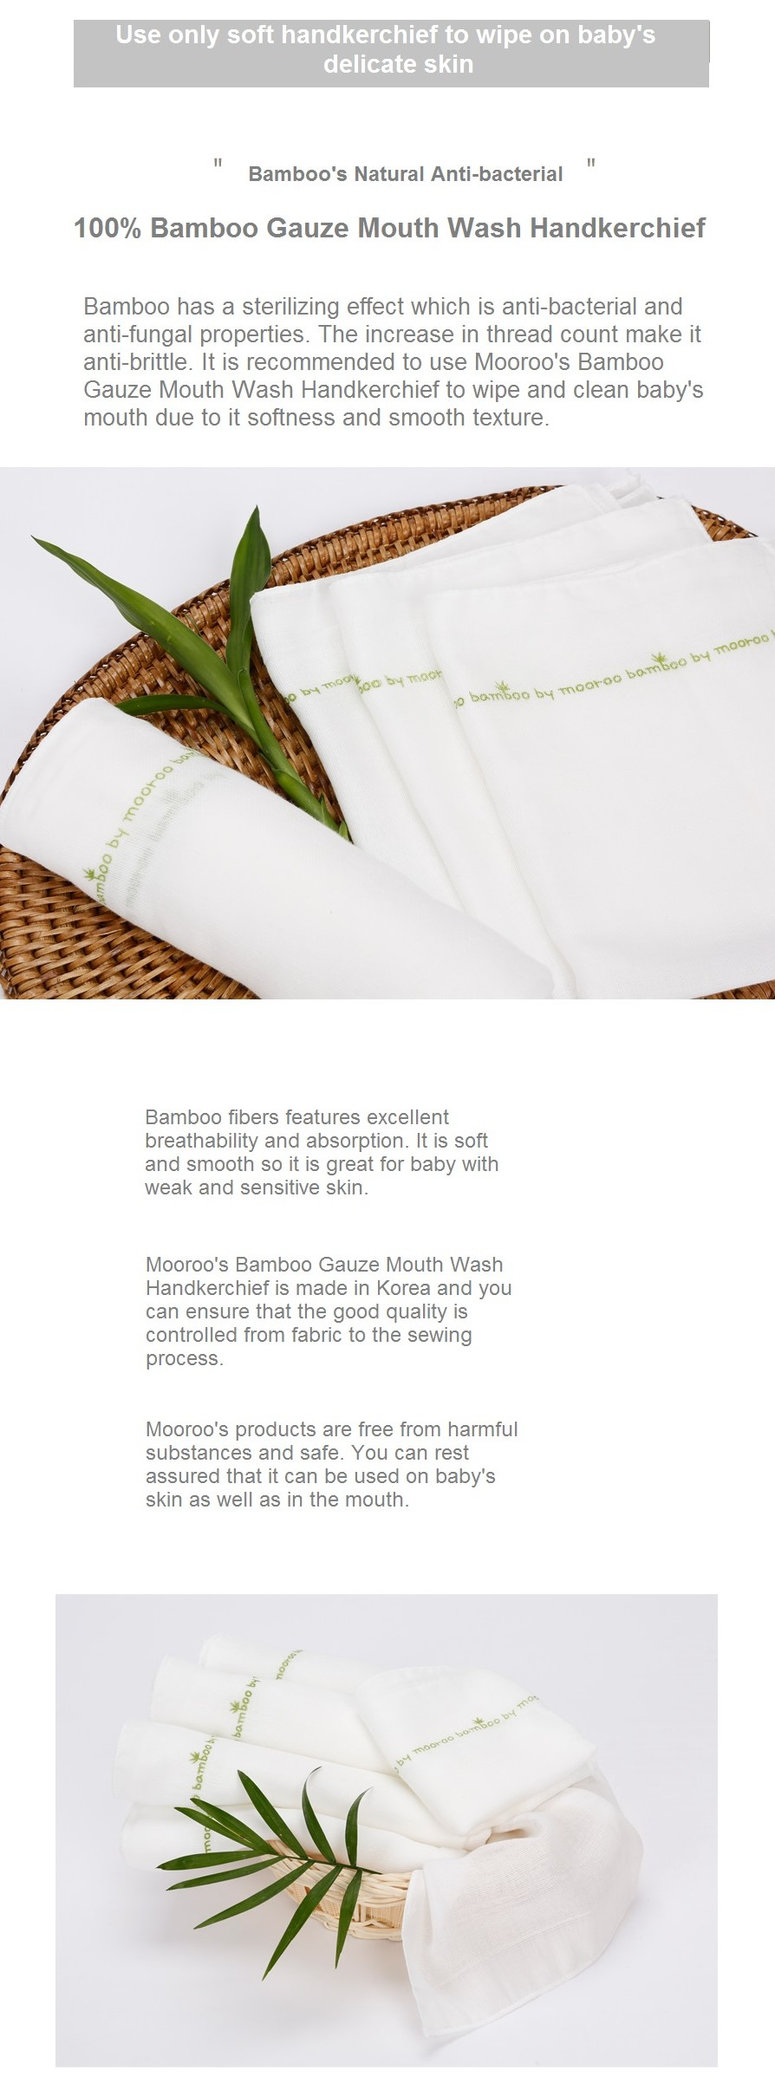 Bamboo Mouth Handkerchief 1-1.jpg